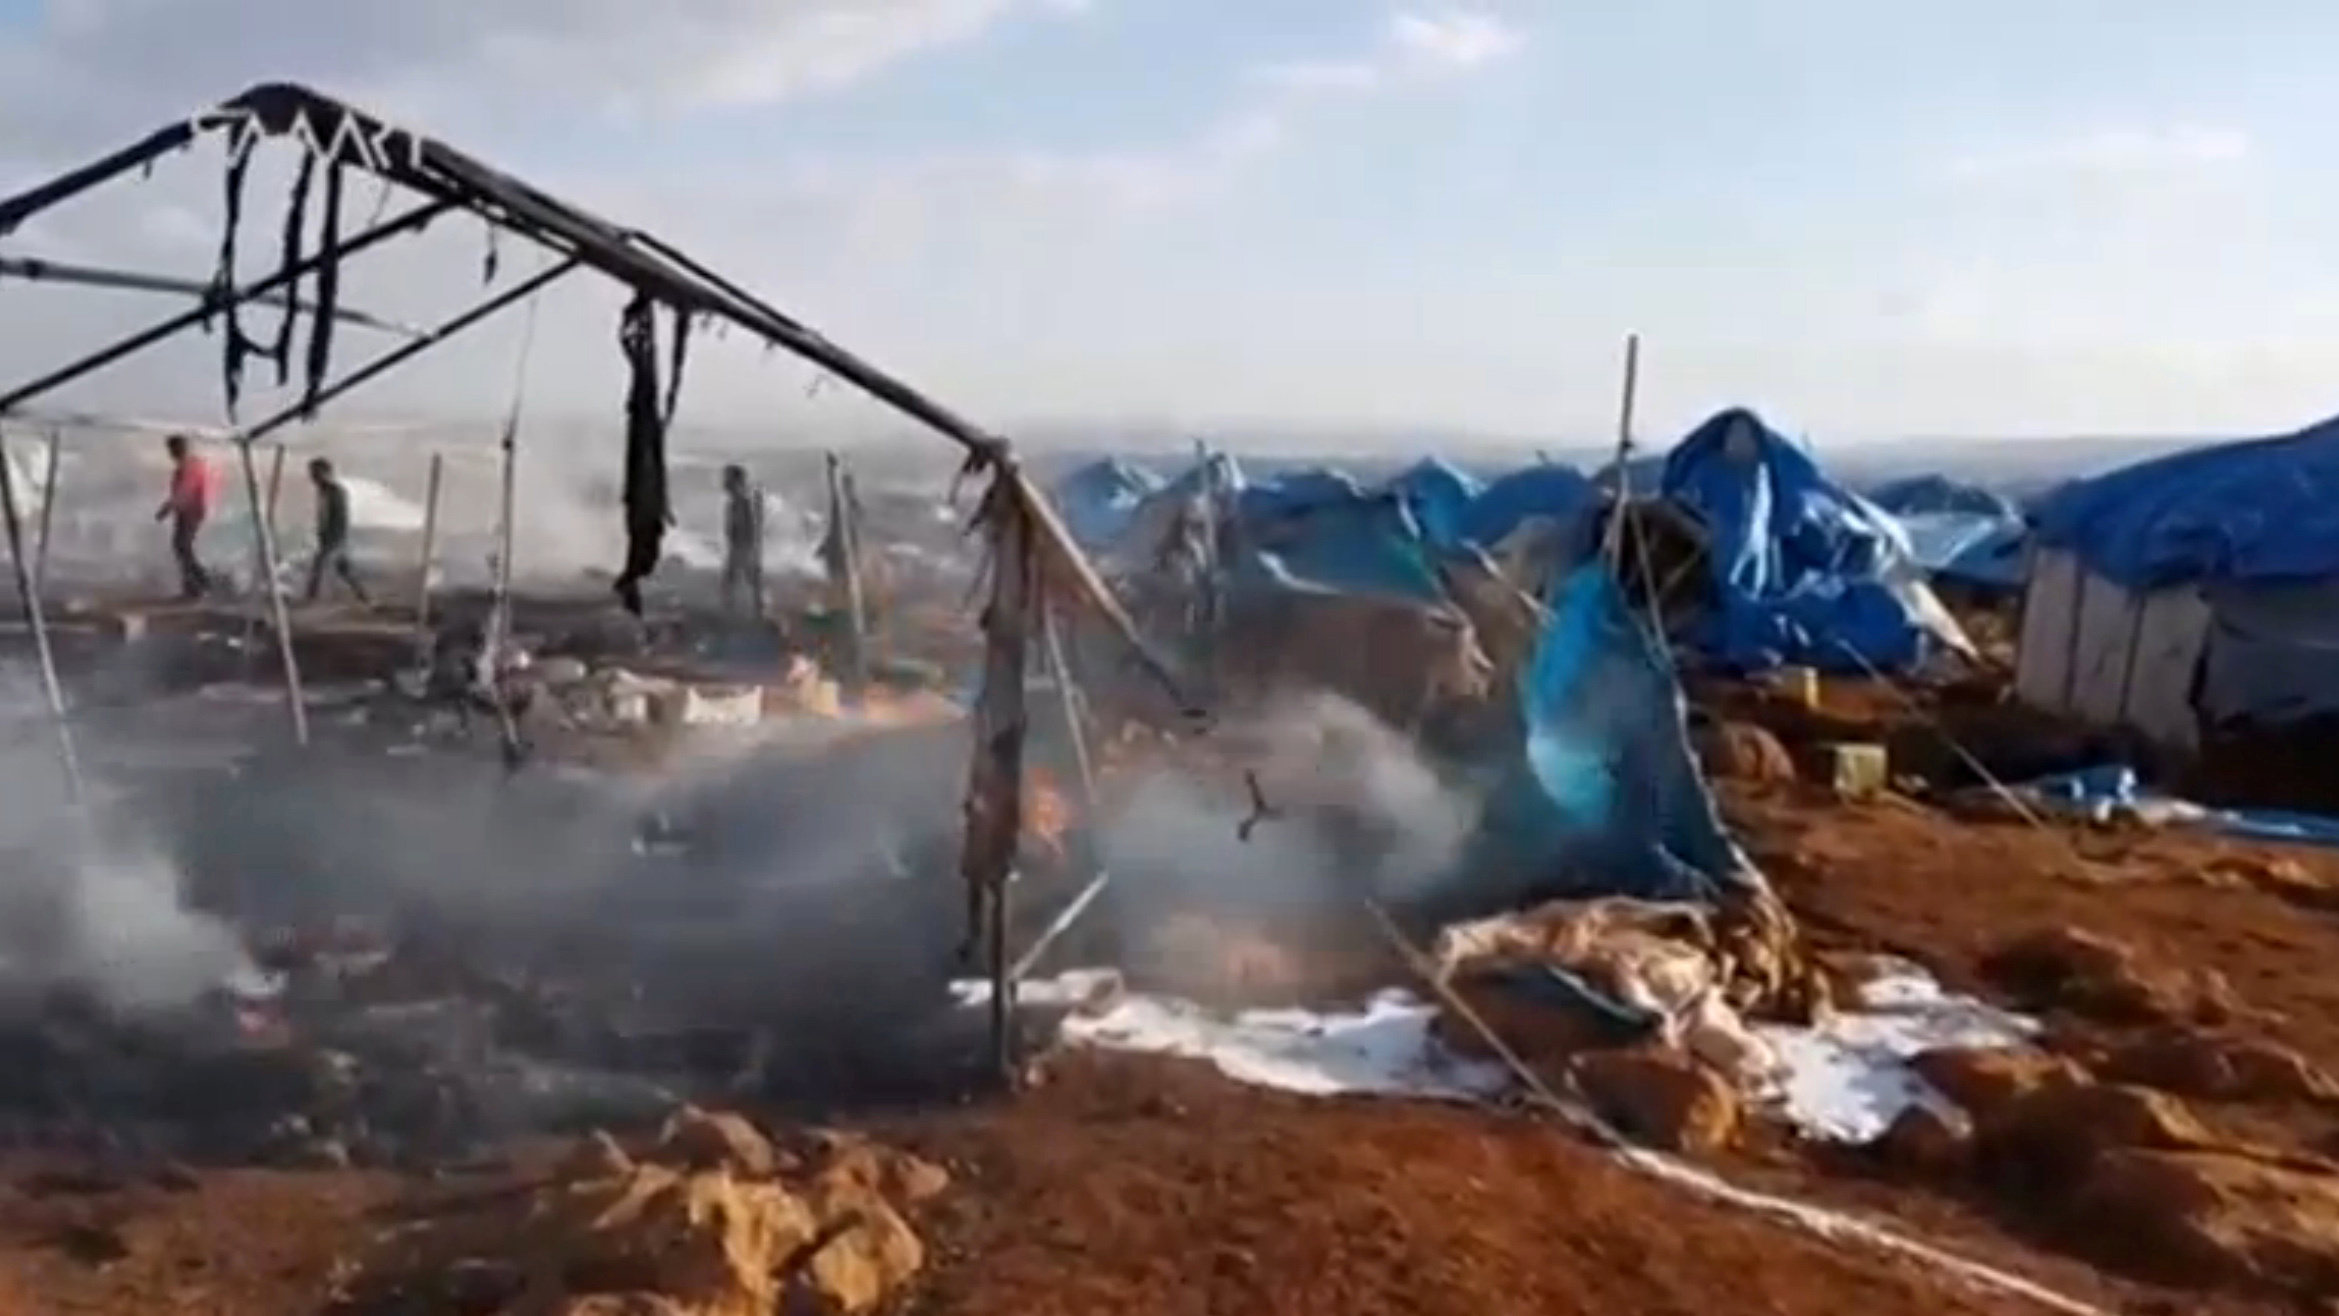 People walk though burnt tents at a camp for internally displaced people near Sarmada in Syria's Idlib province in this undated still image taken from video on May 6, 2016.